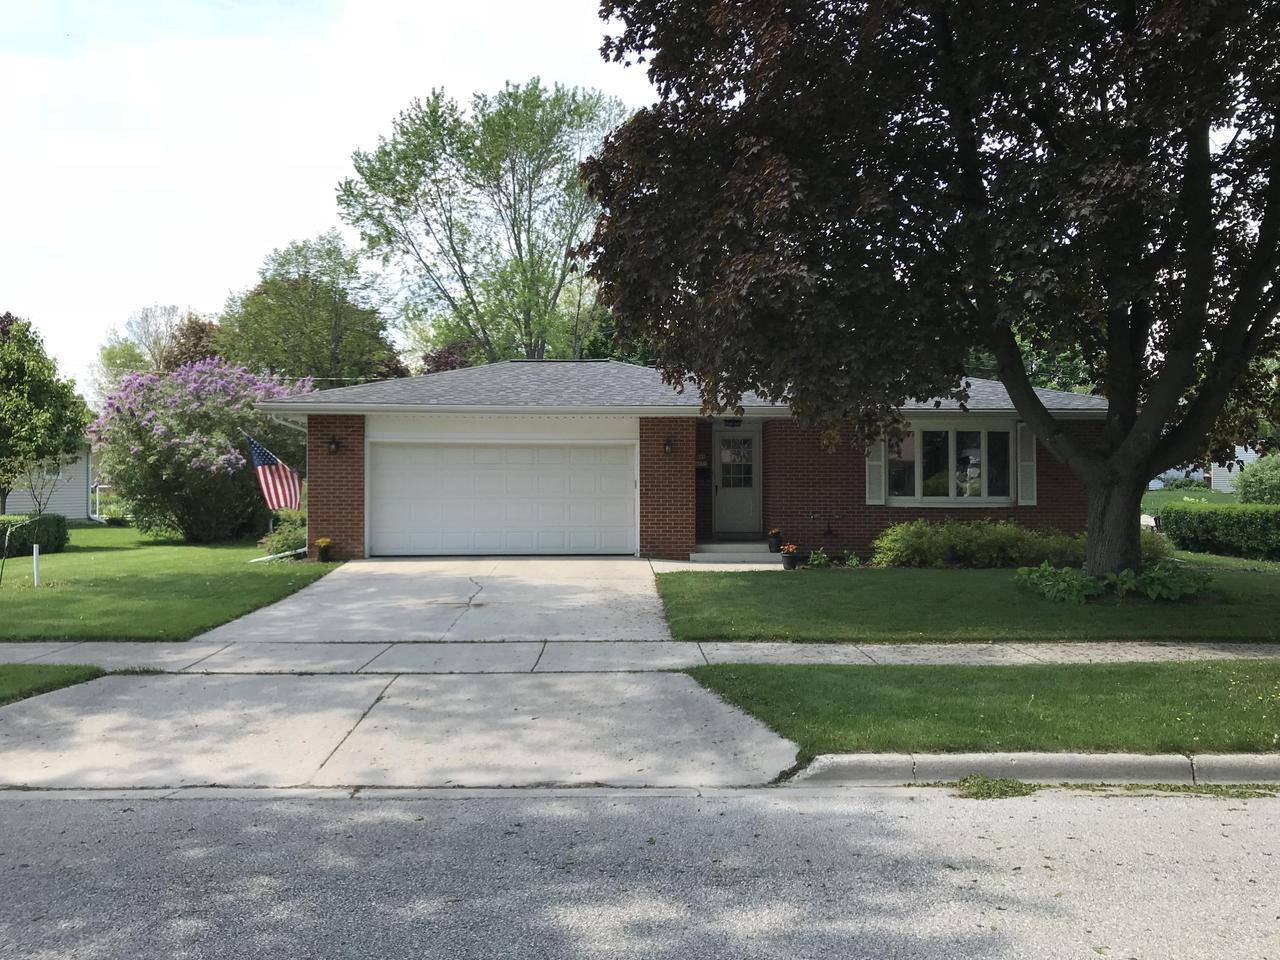 It's hard to beat this location. 4 doors down from Westlawn Elementary, 2 blocks from the Ozaukee interurban trail, and walking distance to the outstanding dining and shopping options in historic downtown Cedarburg. You'll appreciate all of the quality upgrades in the home that make this one move in ready. Beautiful granite counter tops, top to bottom paint job, and the list goes on. You can also rest easy knowing all of the mechanicals are up to date. Furnace & A/C 2016, Hot water heater 2017, Plumbing and electrical totally updated as well. Get in now and start enjoying summer in Cedarburg.